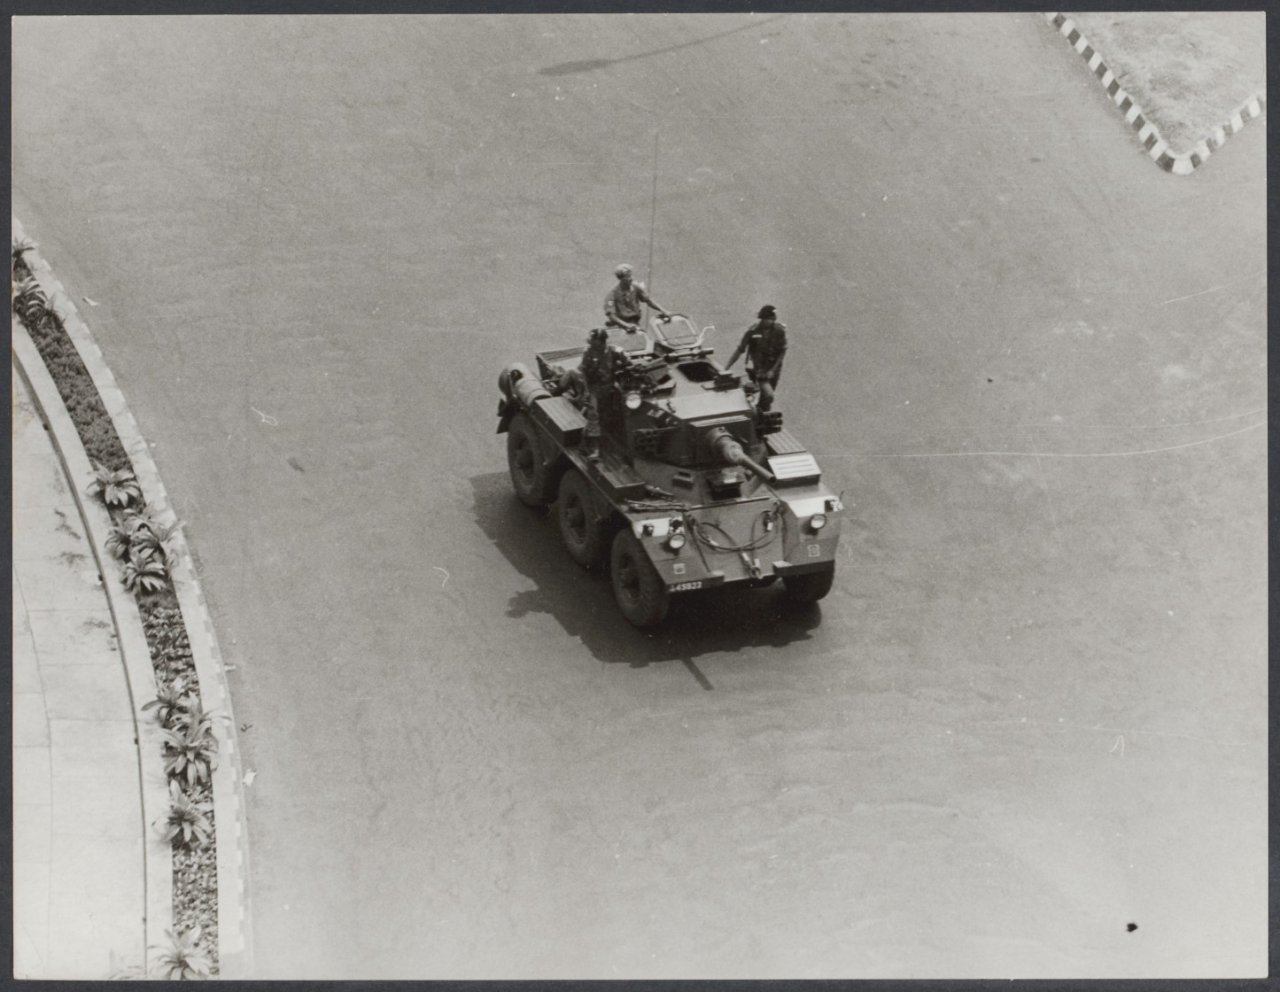 OLD INDONESIAN VEHICLES: Movement of Indonesian Army in